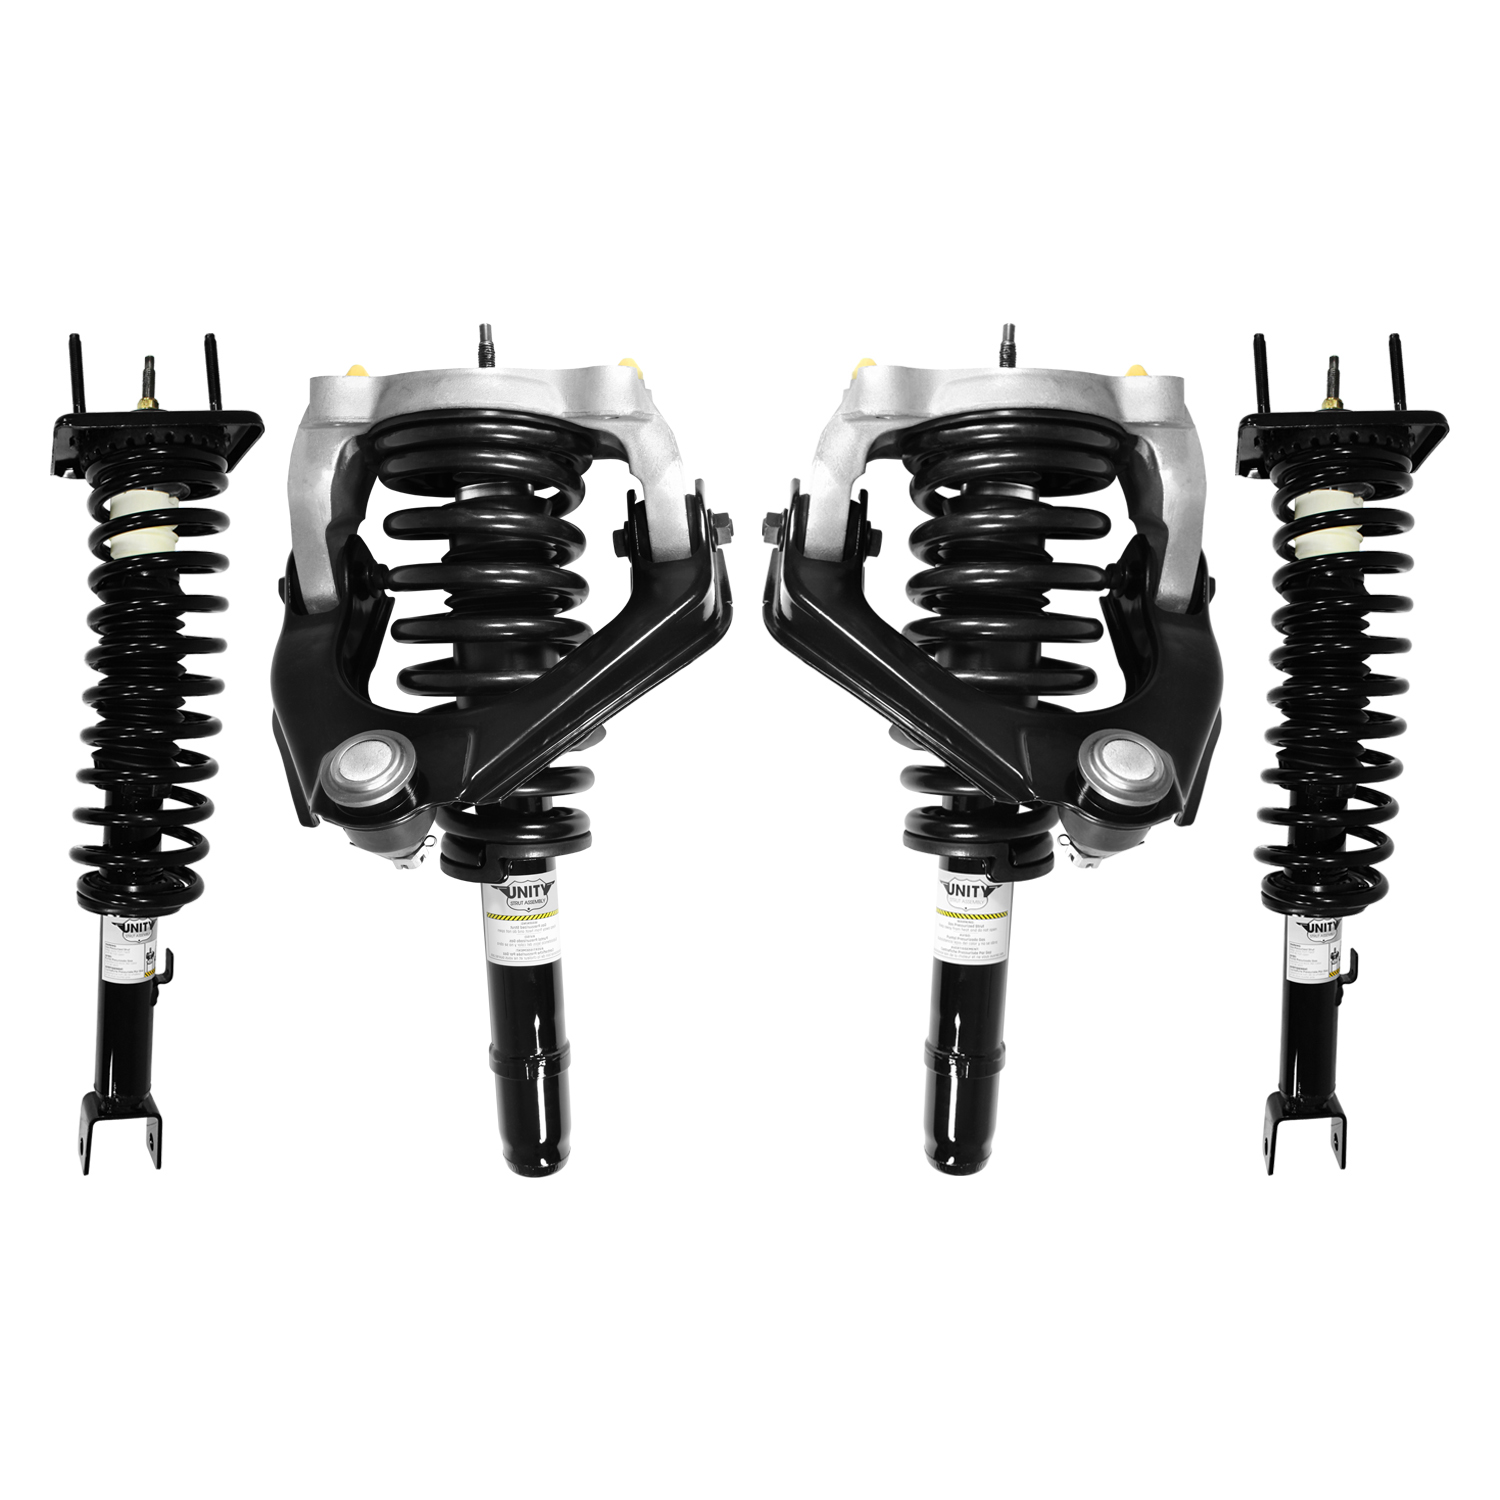 Unity 4-11651-15384-001 Front and Rear 4 Wheel Complete Strut Assembly Kit 1999-2000 Chrysler Sebring (Convertible Only)